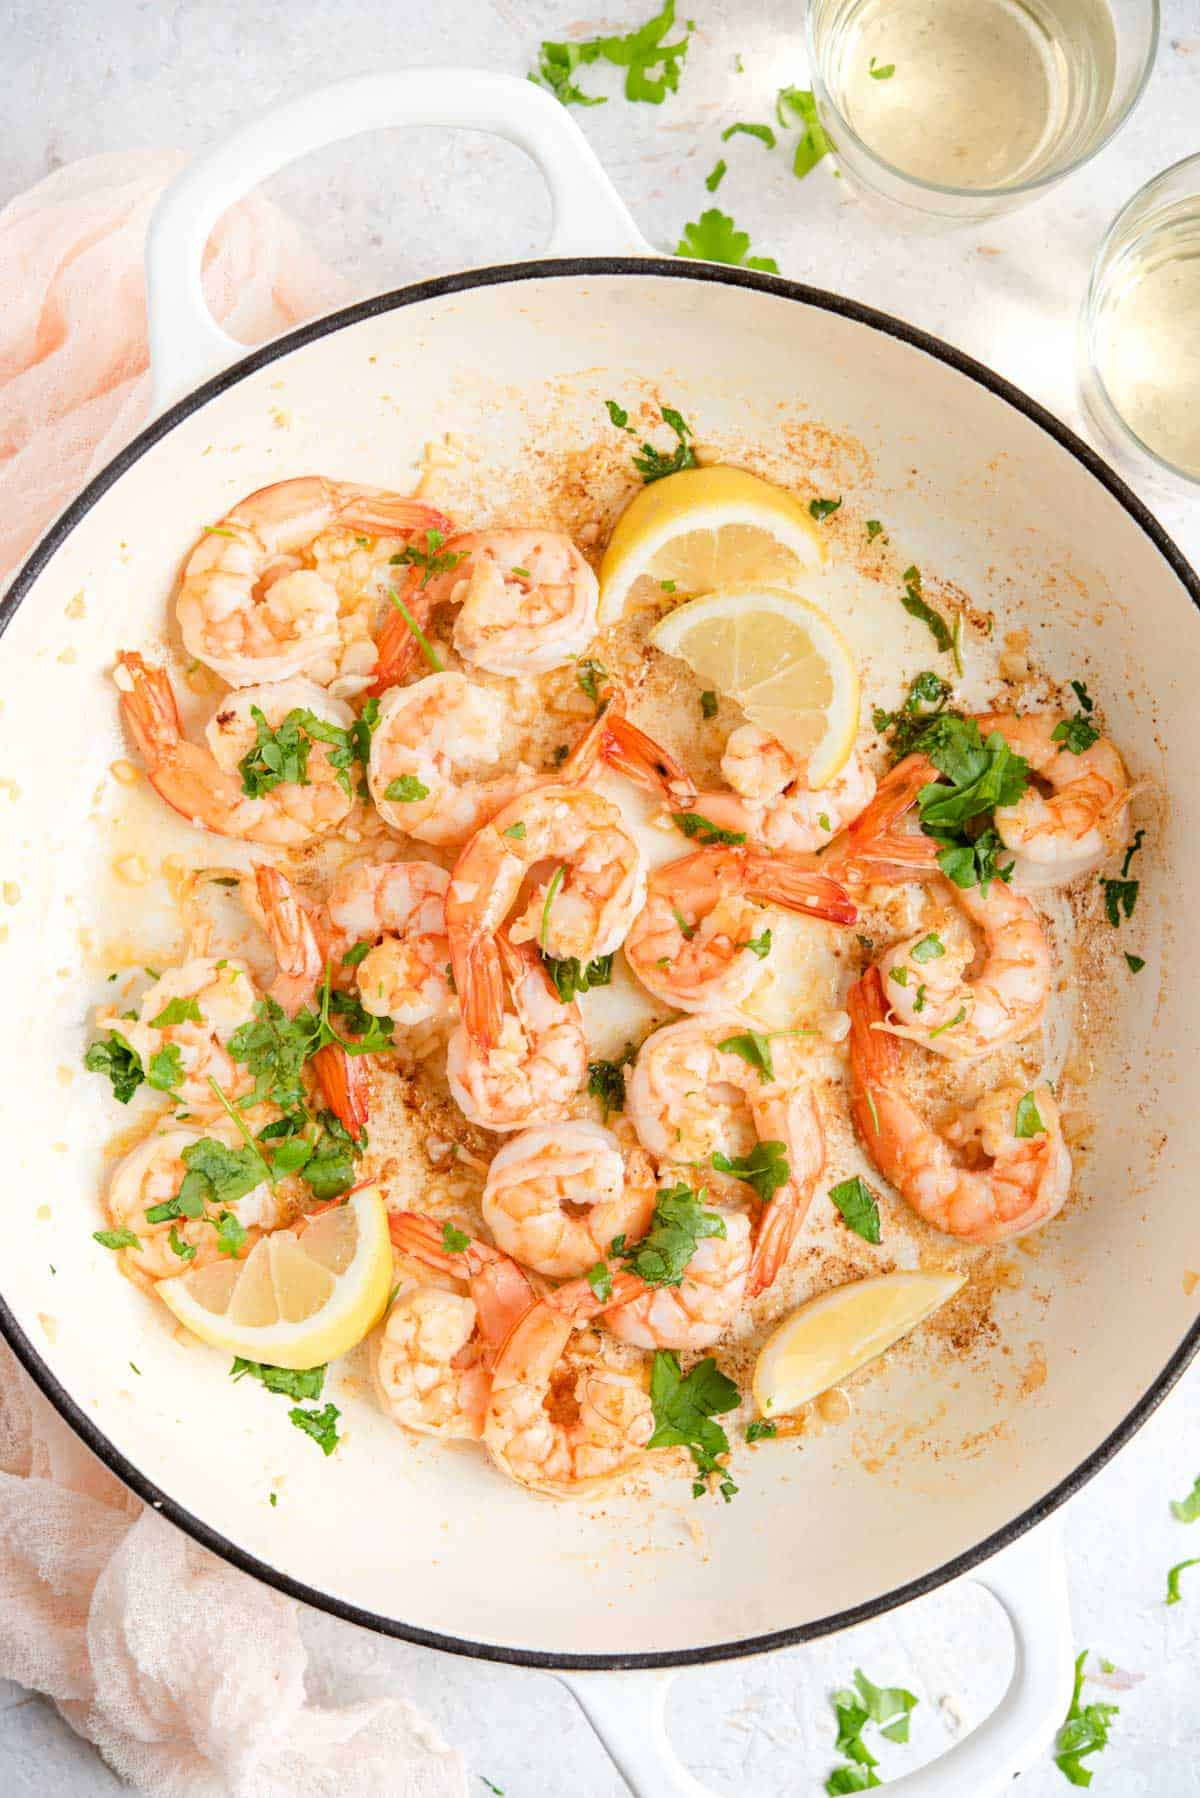 An overhead shot of sauteed shrimp in a large pan